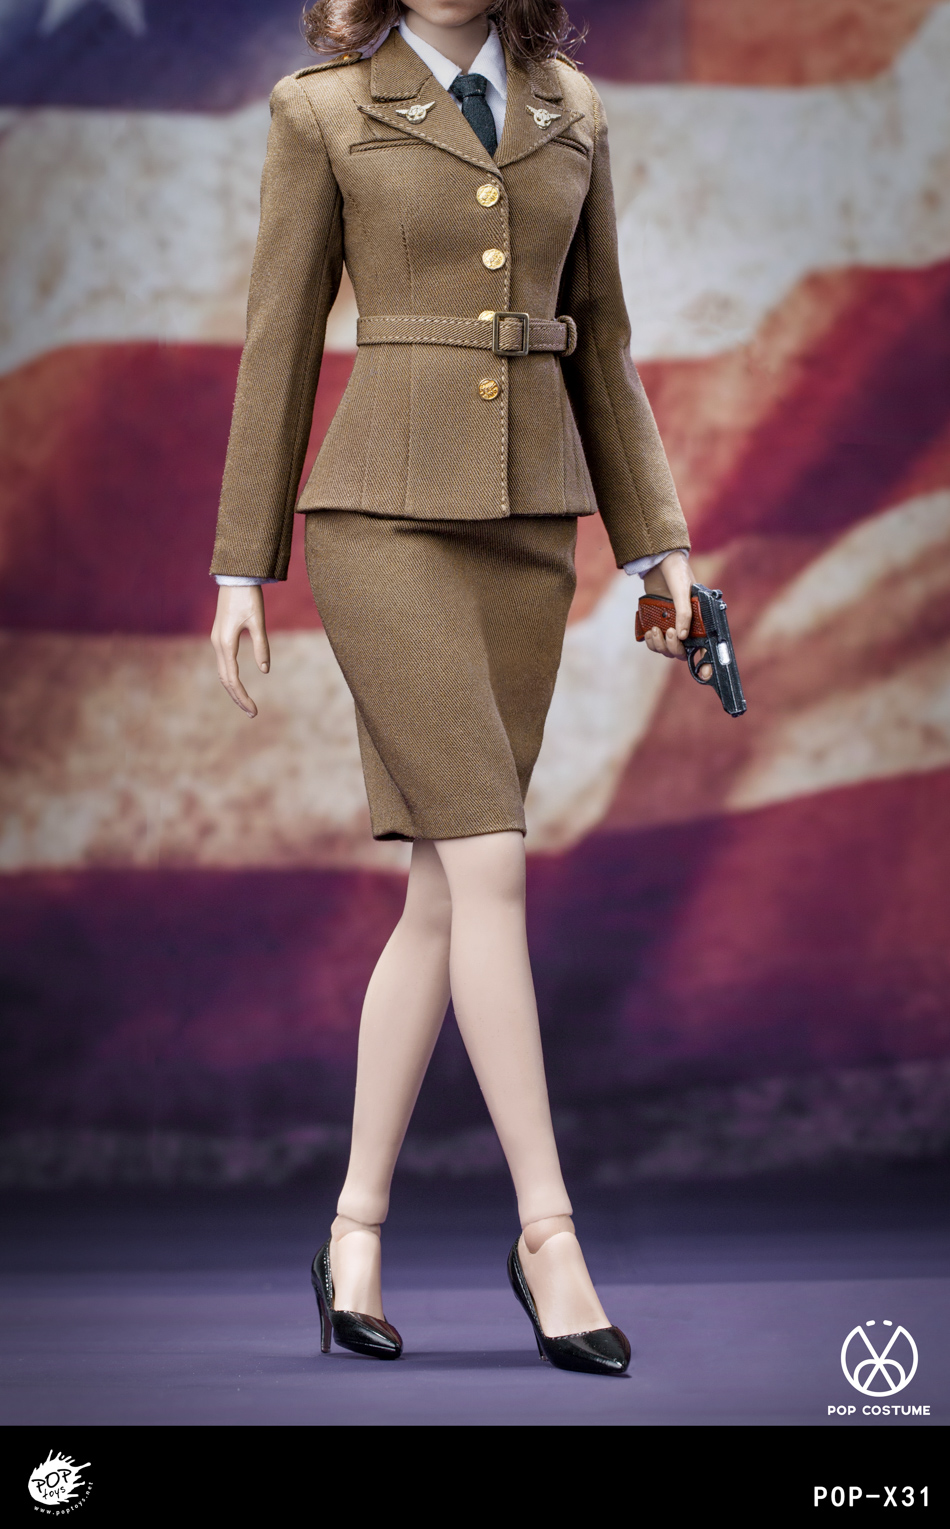 poptoys - NEW PRODUCT: POPTOYS: 1/6 Series X31 - World War II US Female Agent Uniform Set 17551110